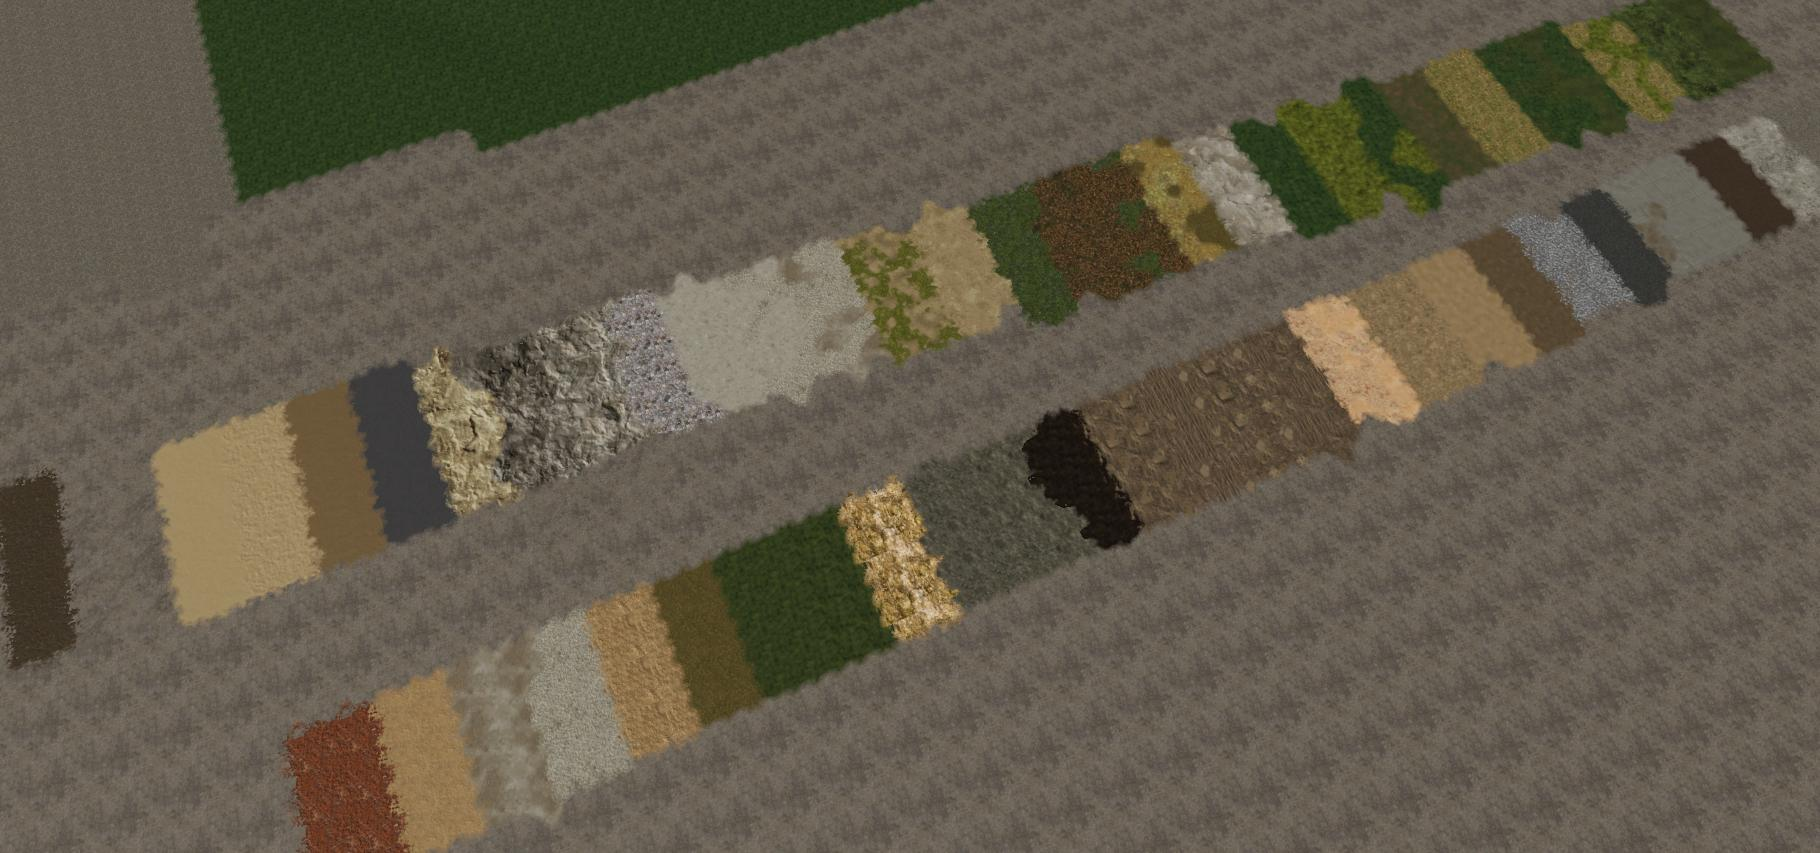 New Added Texture Layers For GE v 1.0